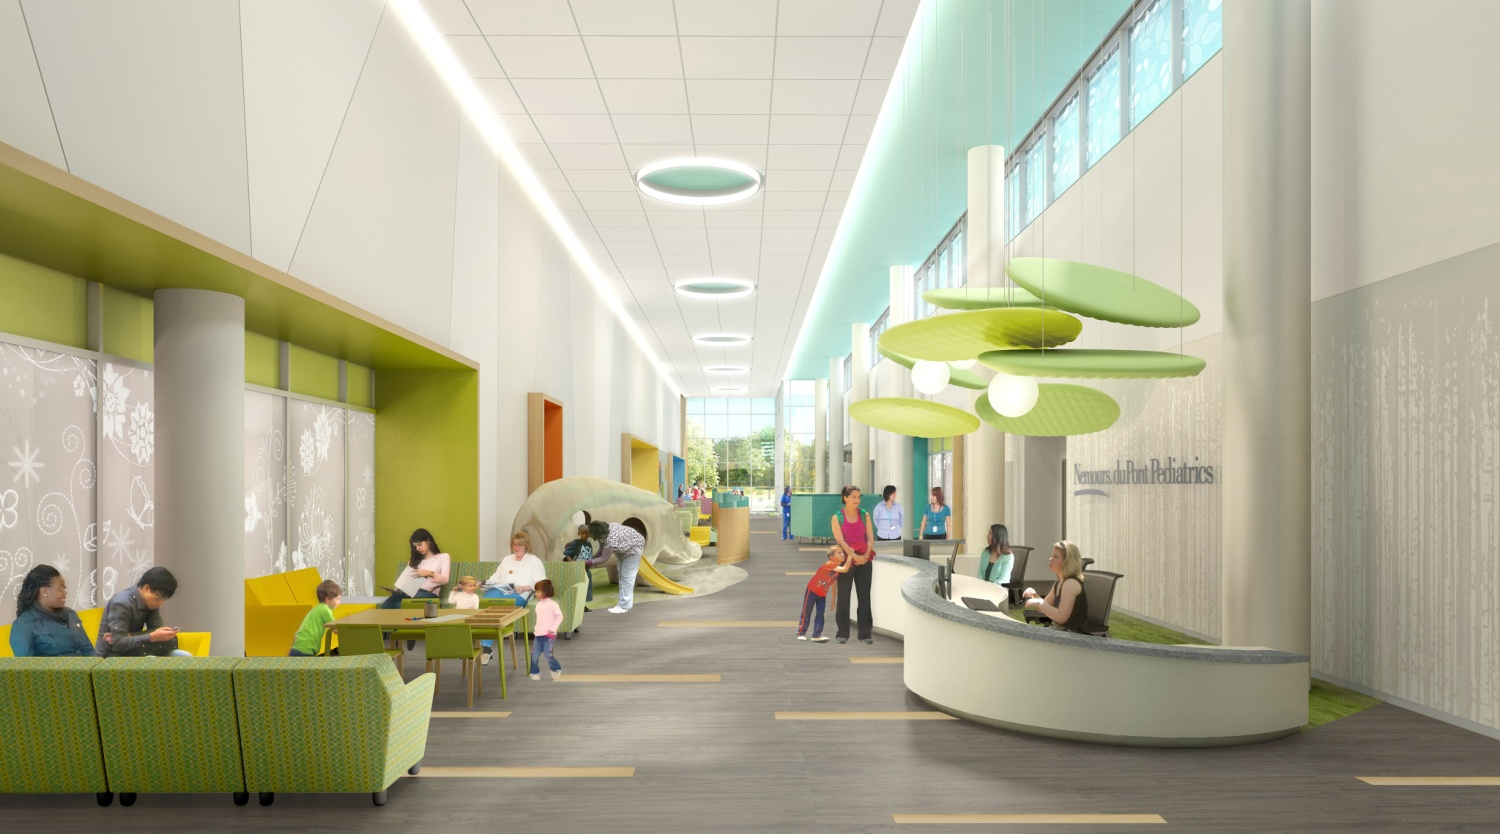 Top 10 Considerations For Designing A Pediatric Waiting